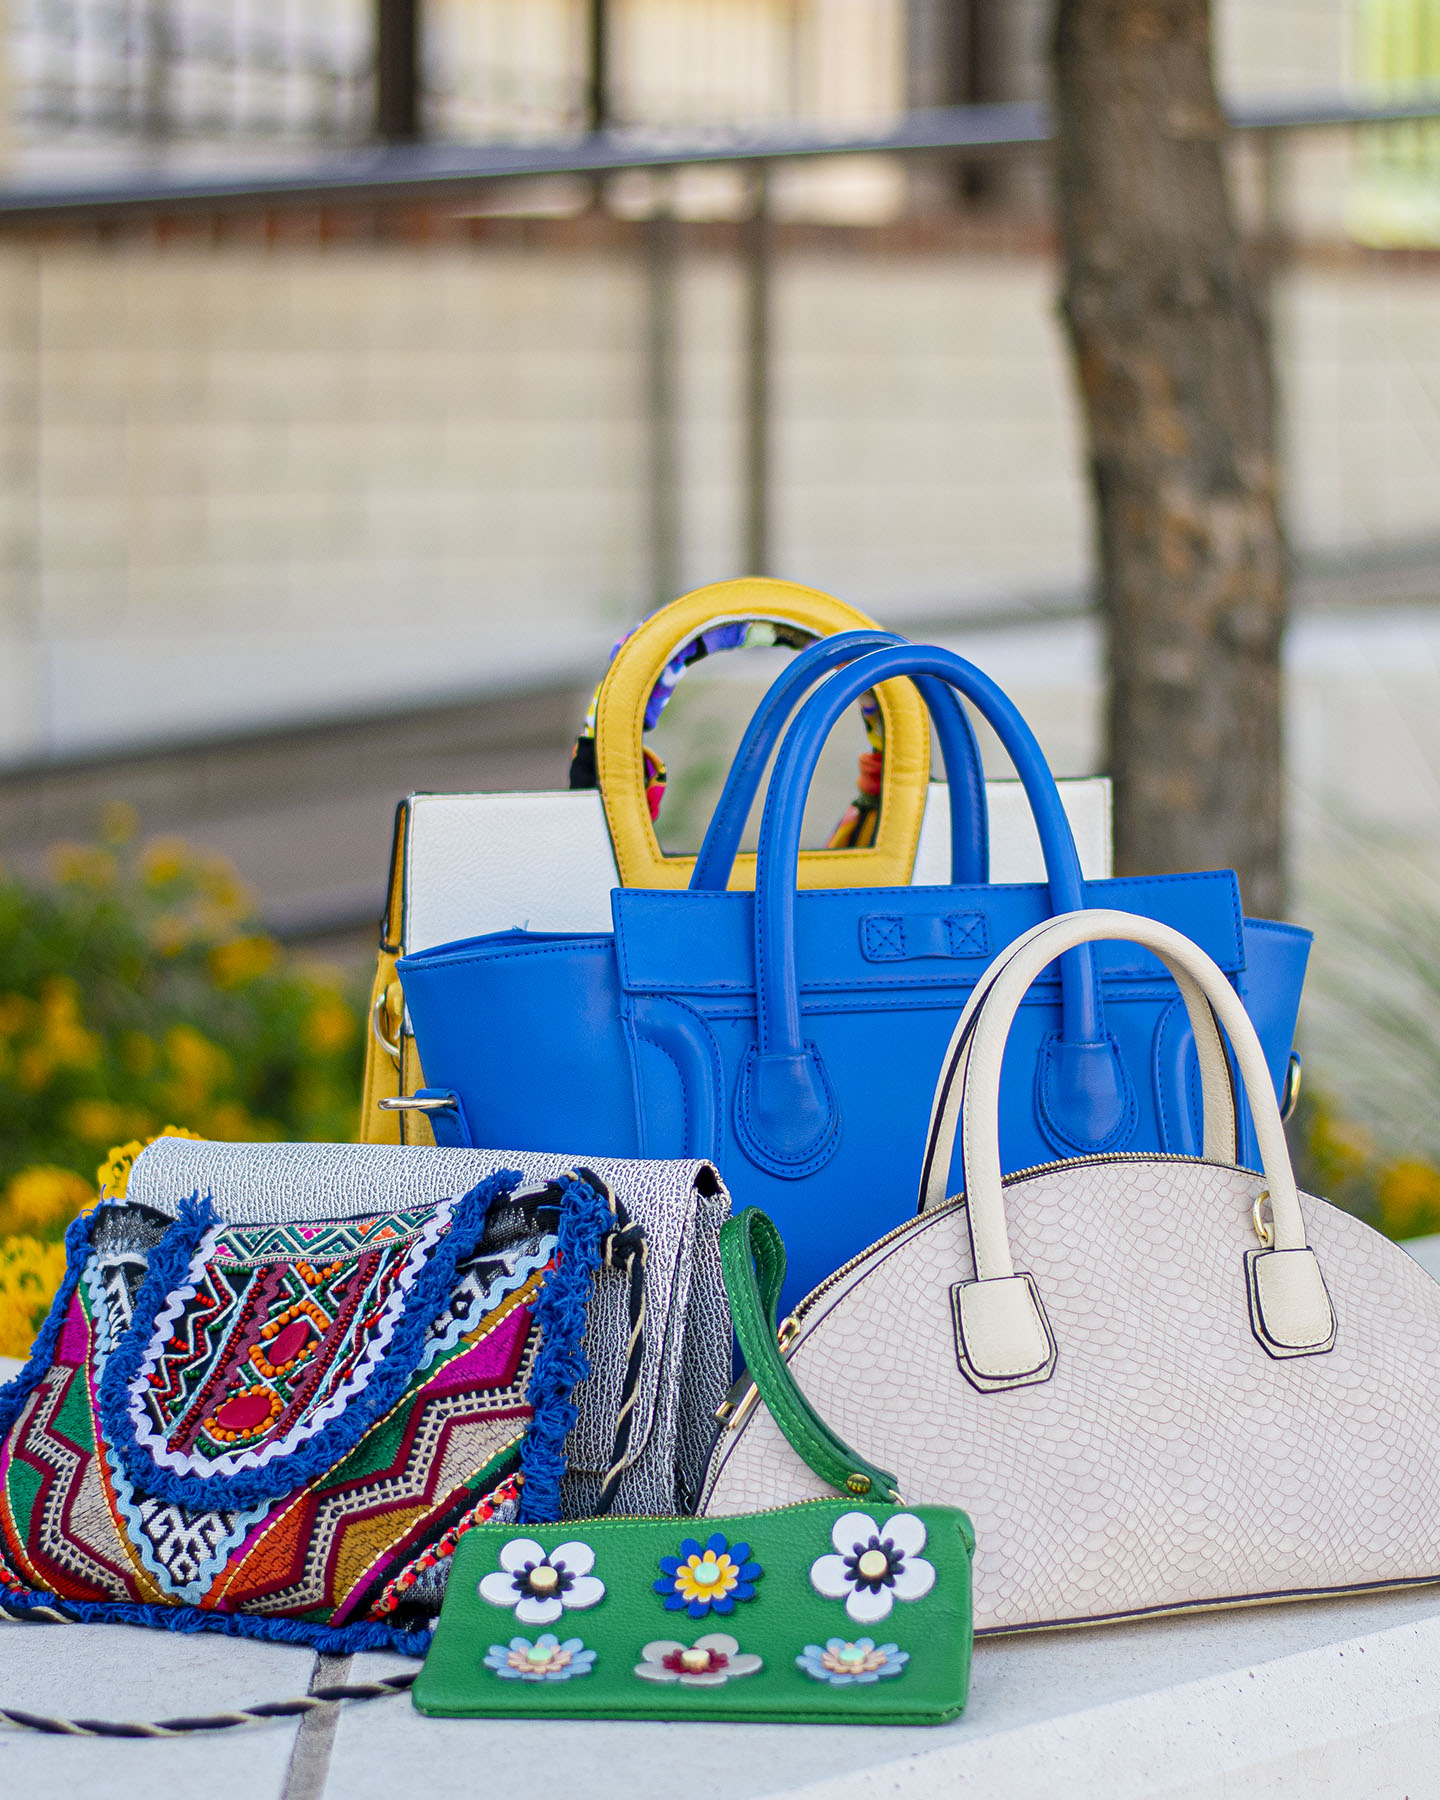 Perfect Bag: Using Your Imagination for Purse Hacks and Rules